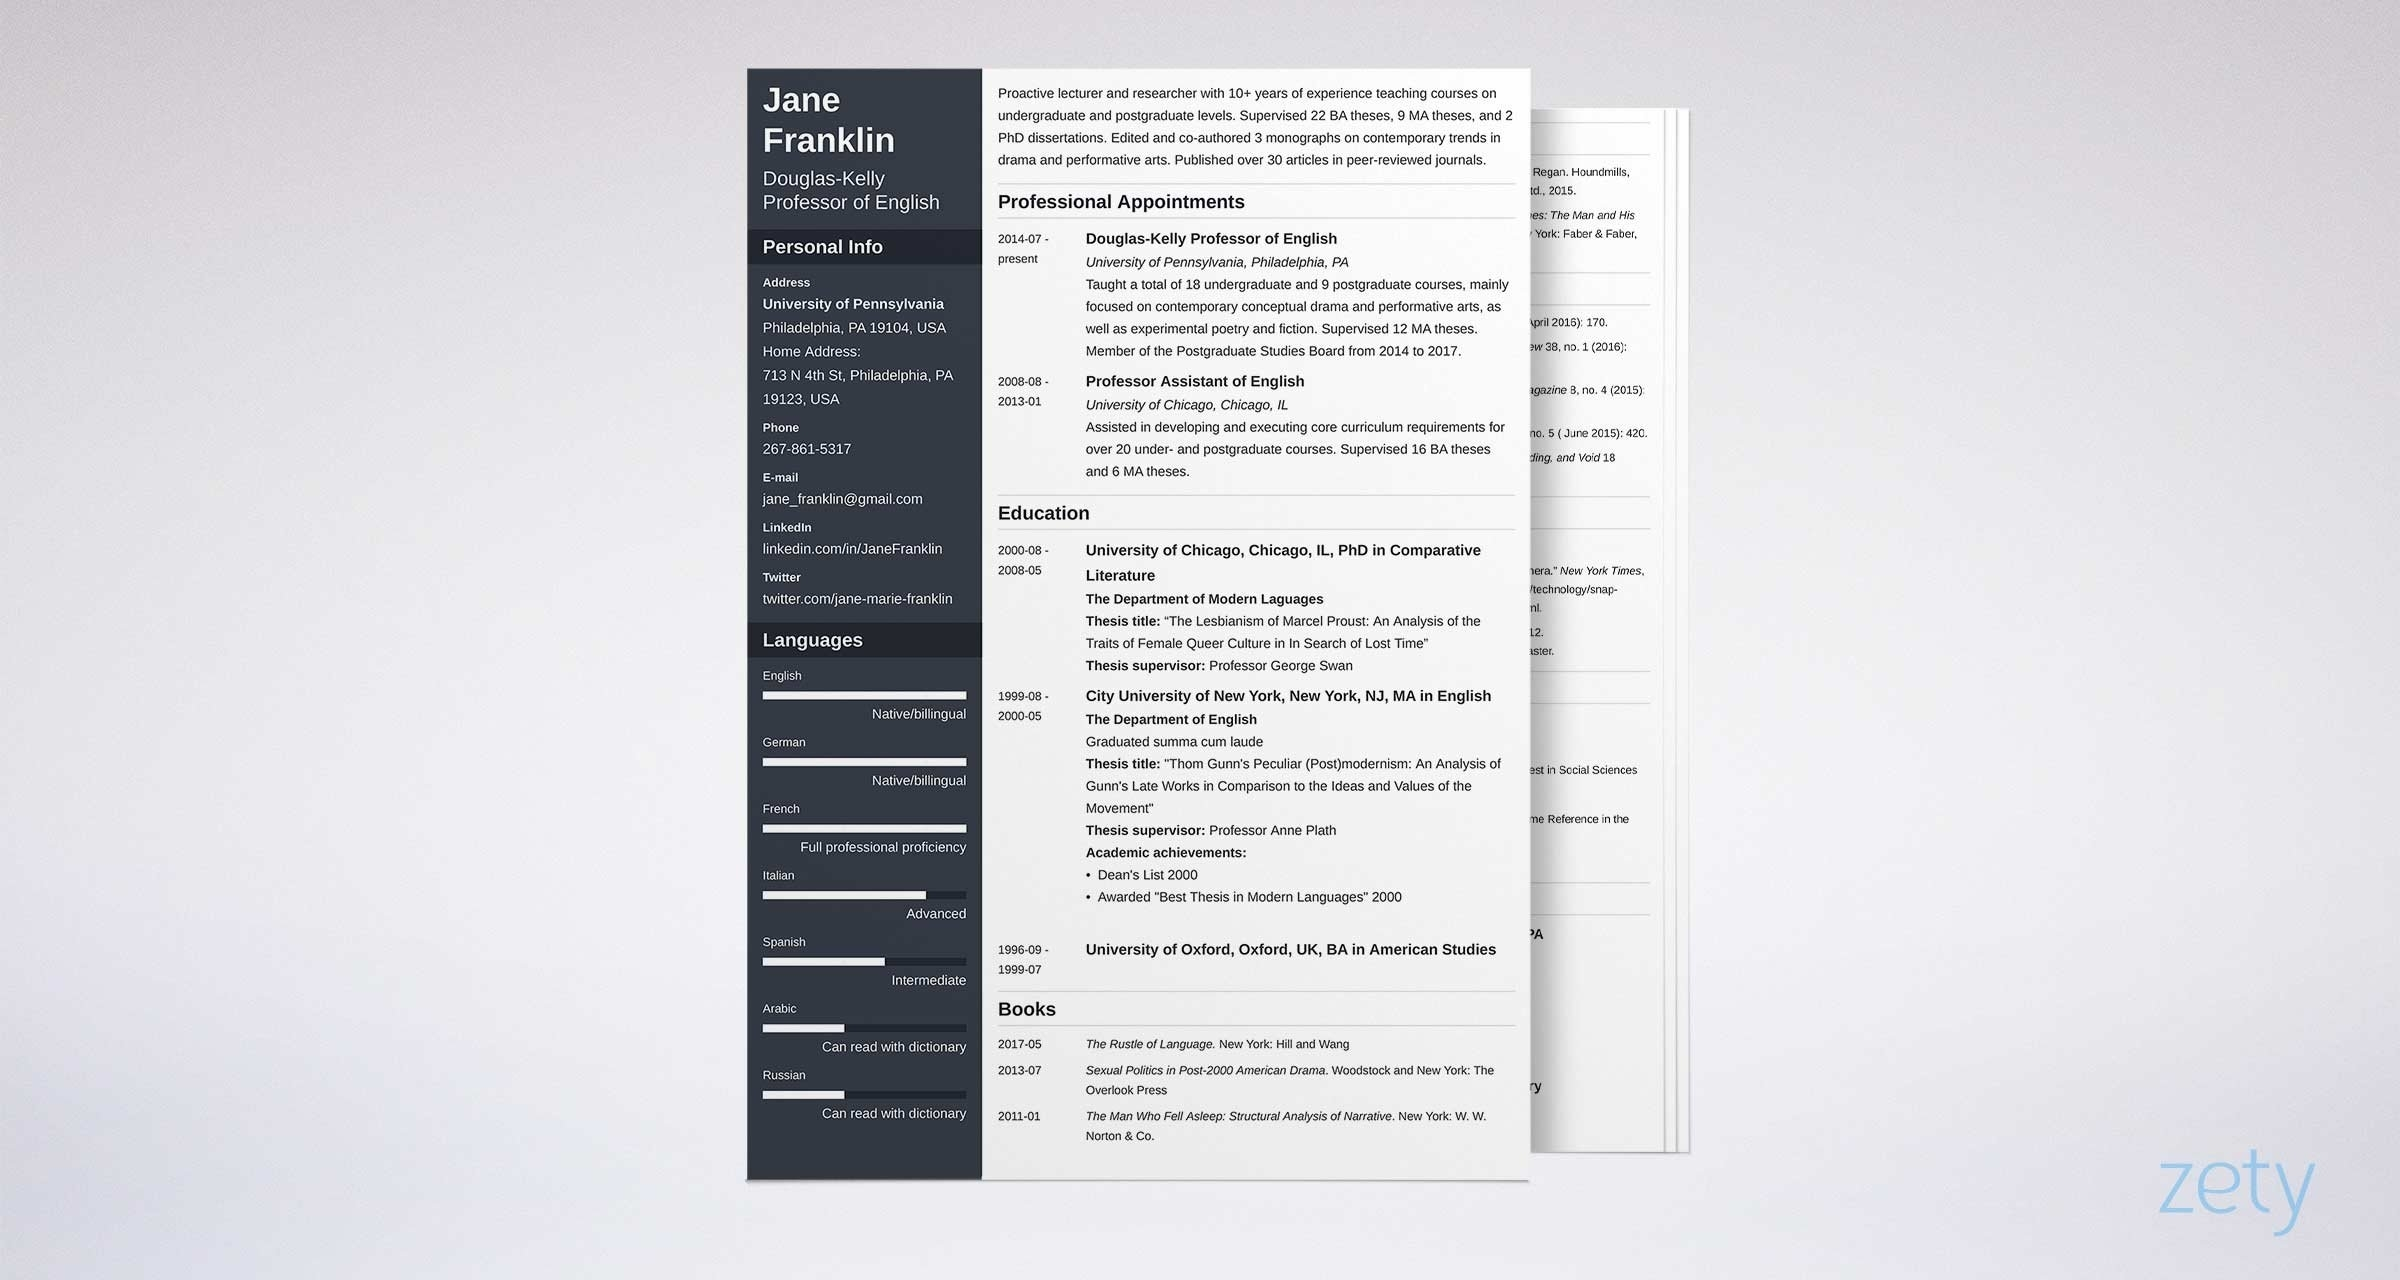 Academic (Cv) Curriculum Vitae: Template, Examples & Guide